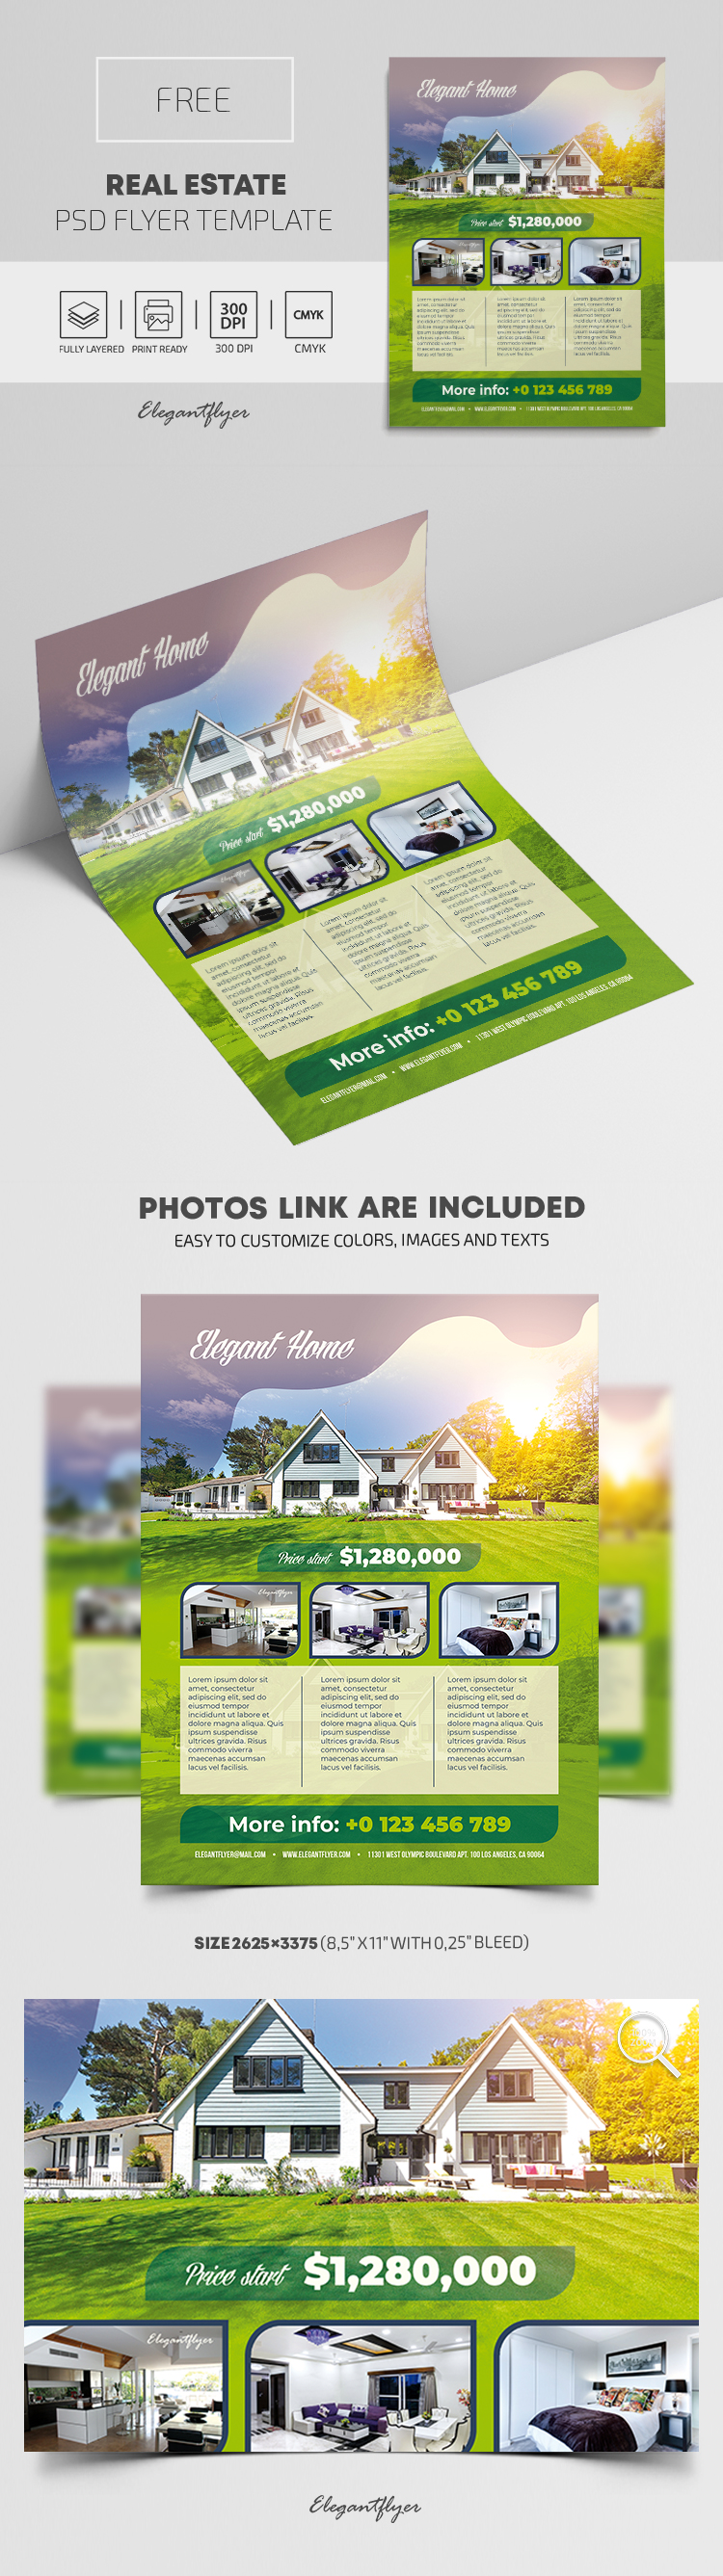 Real Estate – Free PSD Flyer Template